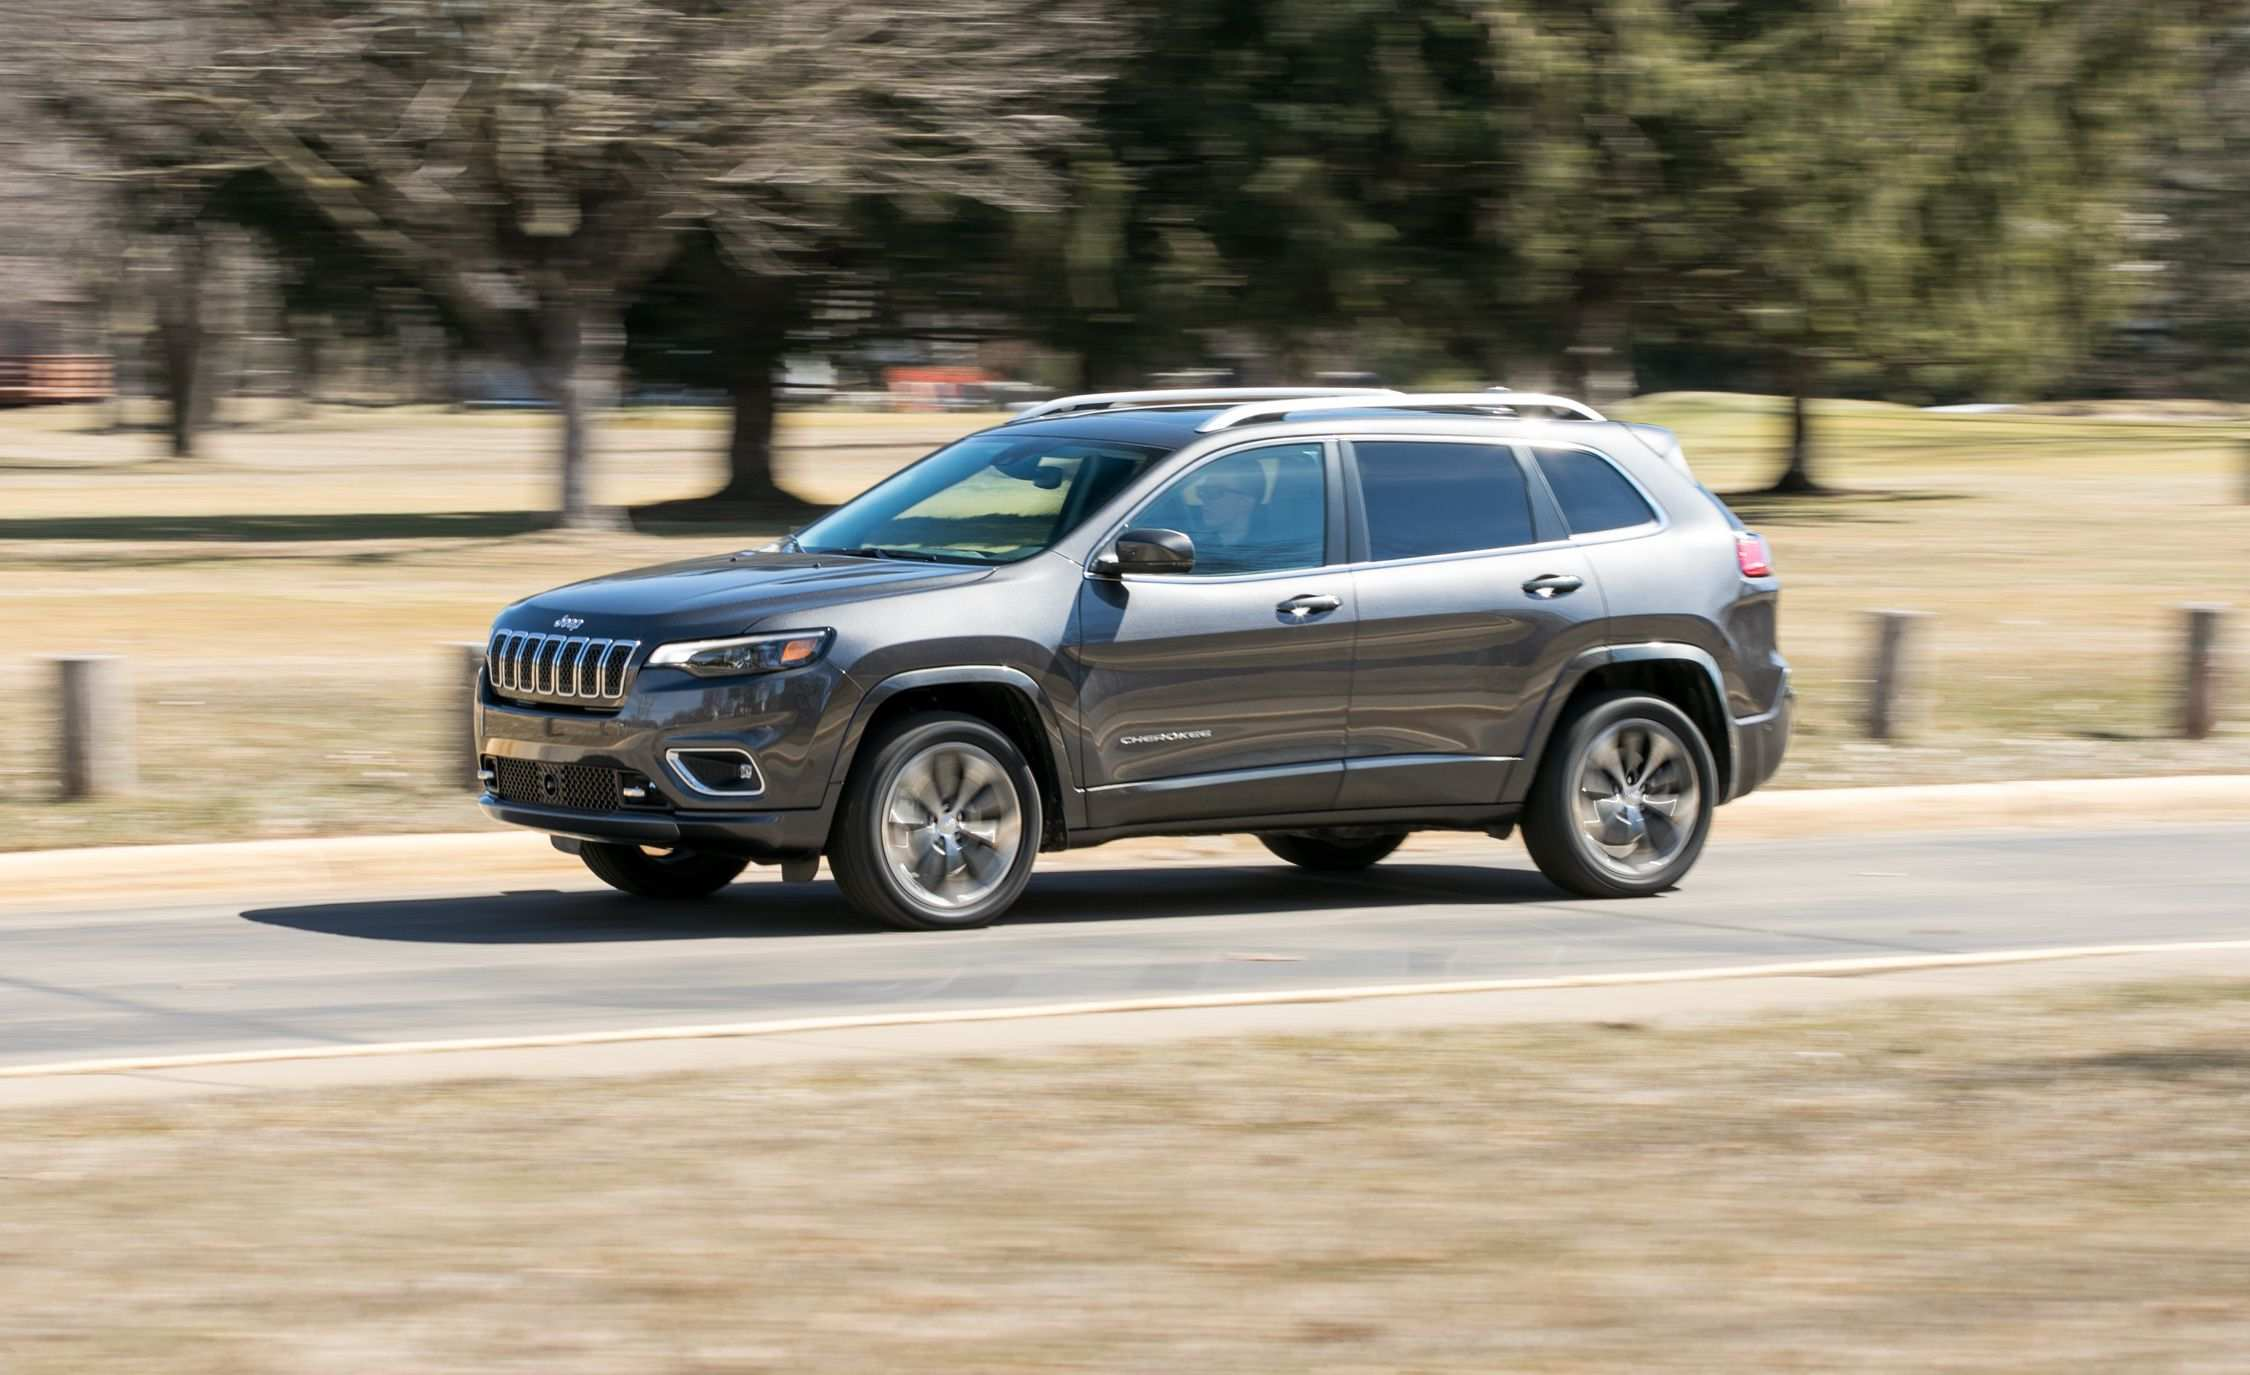 15 Gallery of New Gmc 2019 Jeep Performance And New Engine Spesification by New Gmc 2019 Jeep Performance And New Engine